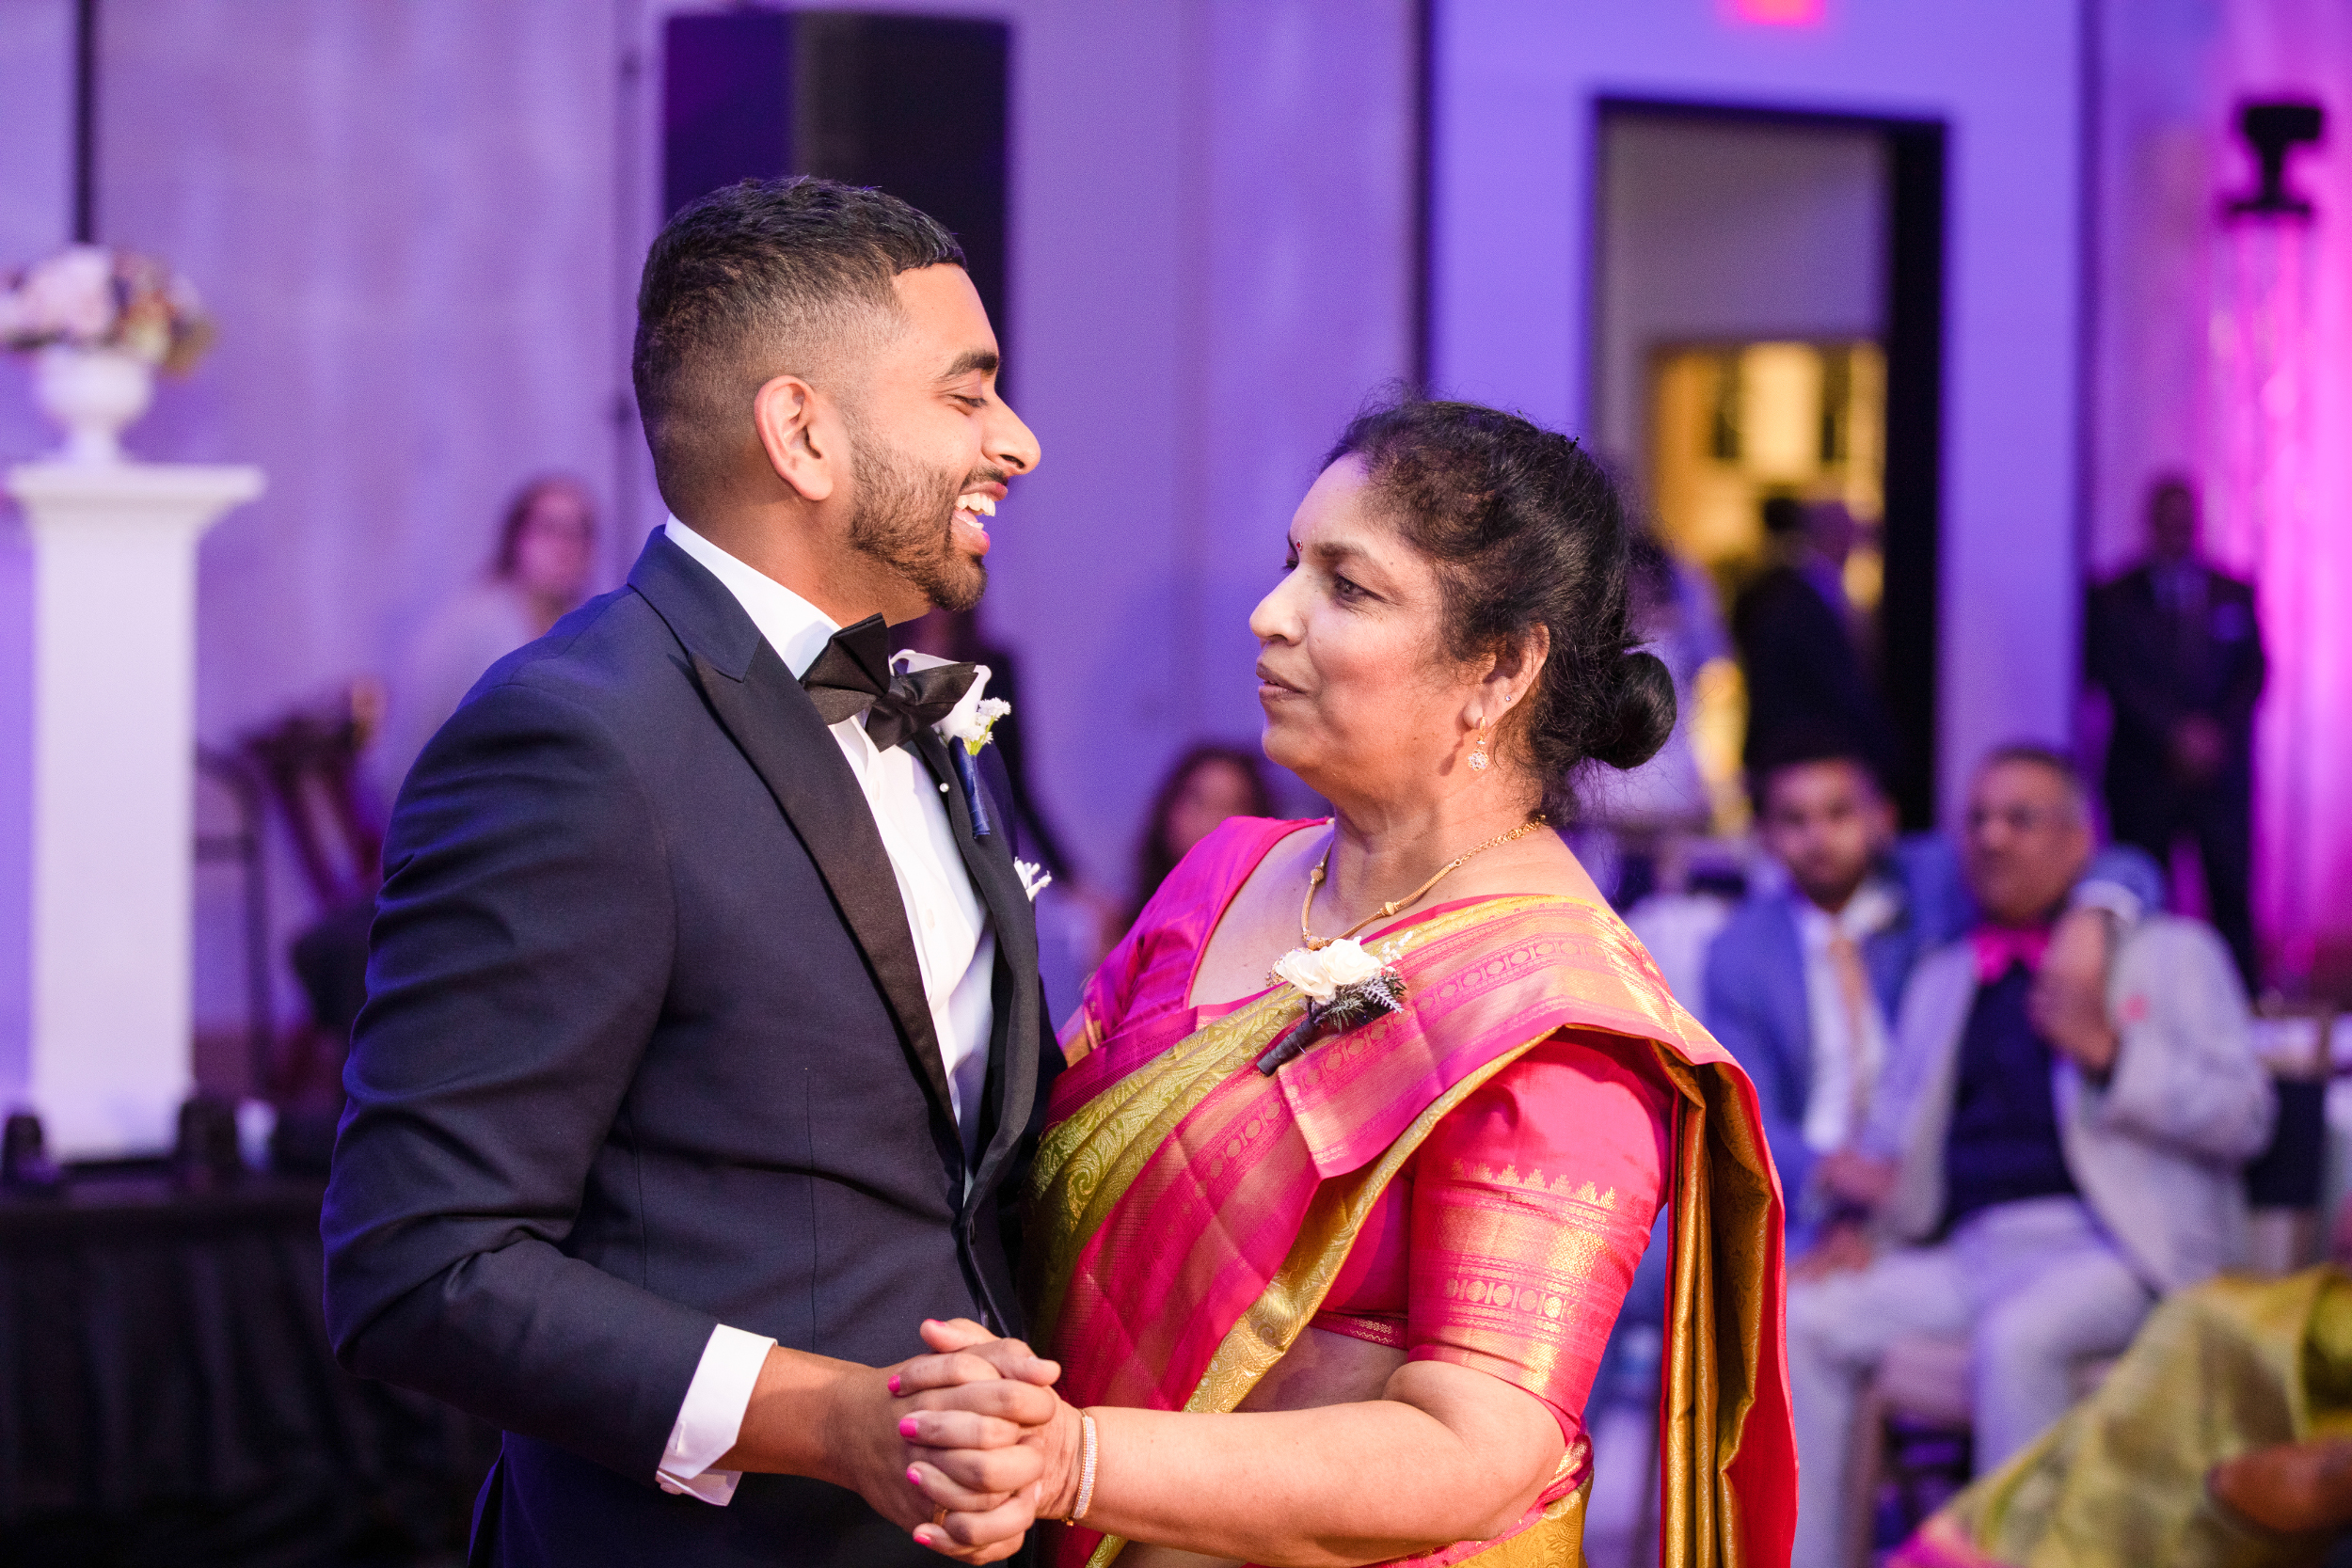 Mother&Son dance